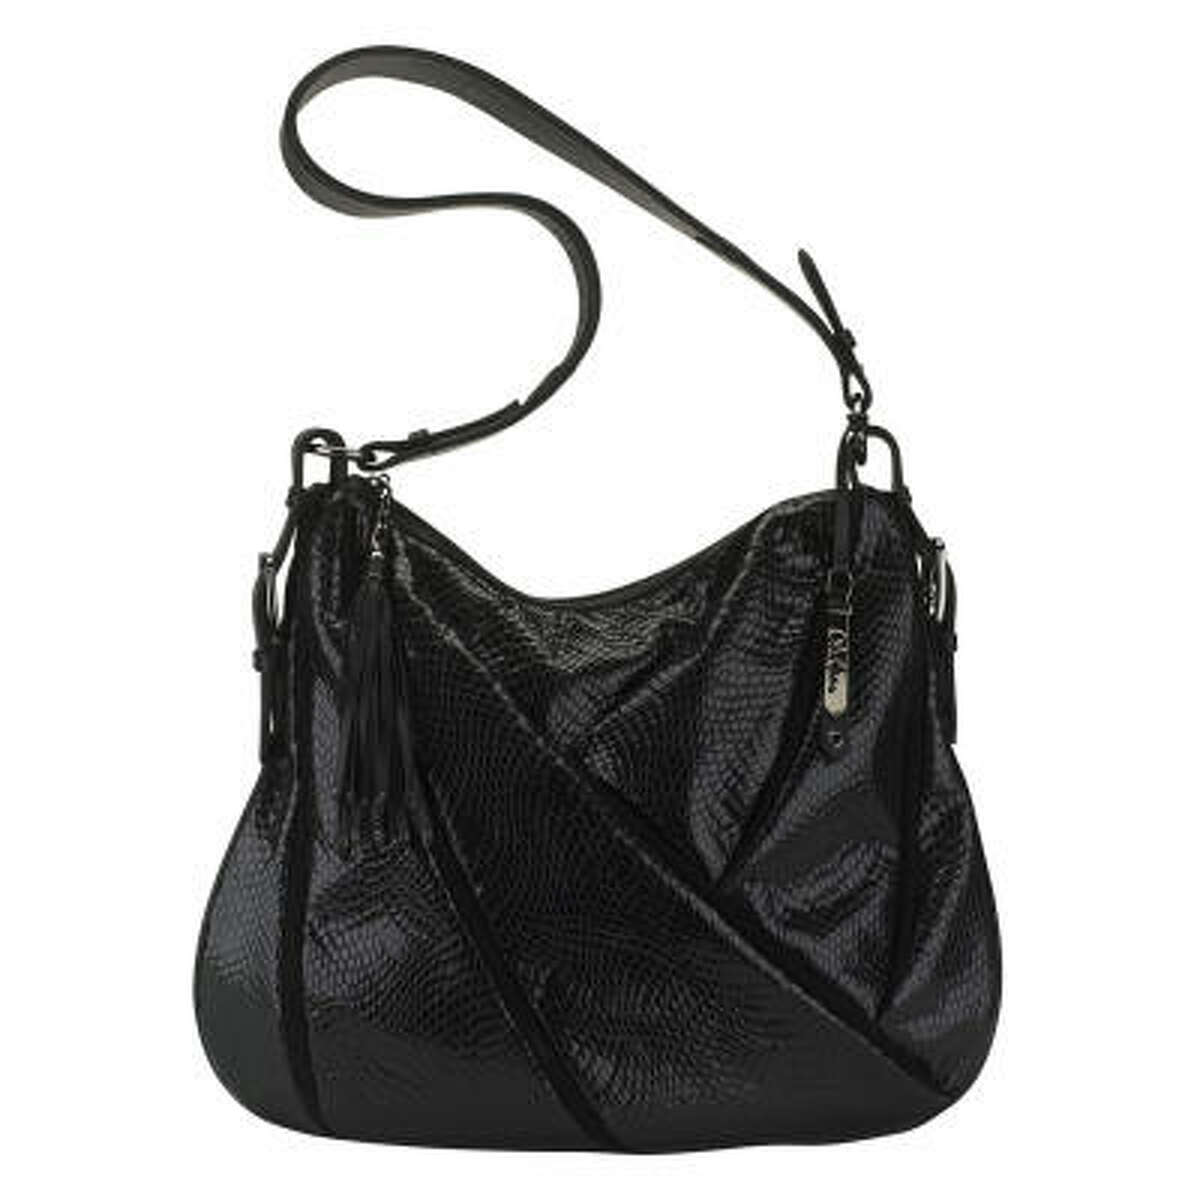 The Maria N/S Hobo is part of the Maria Sharapova Collection.